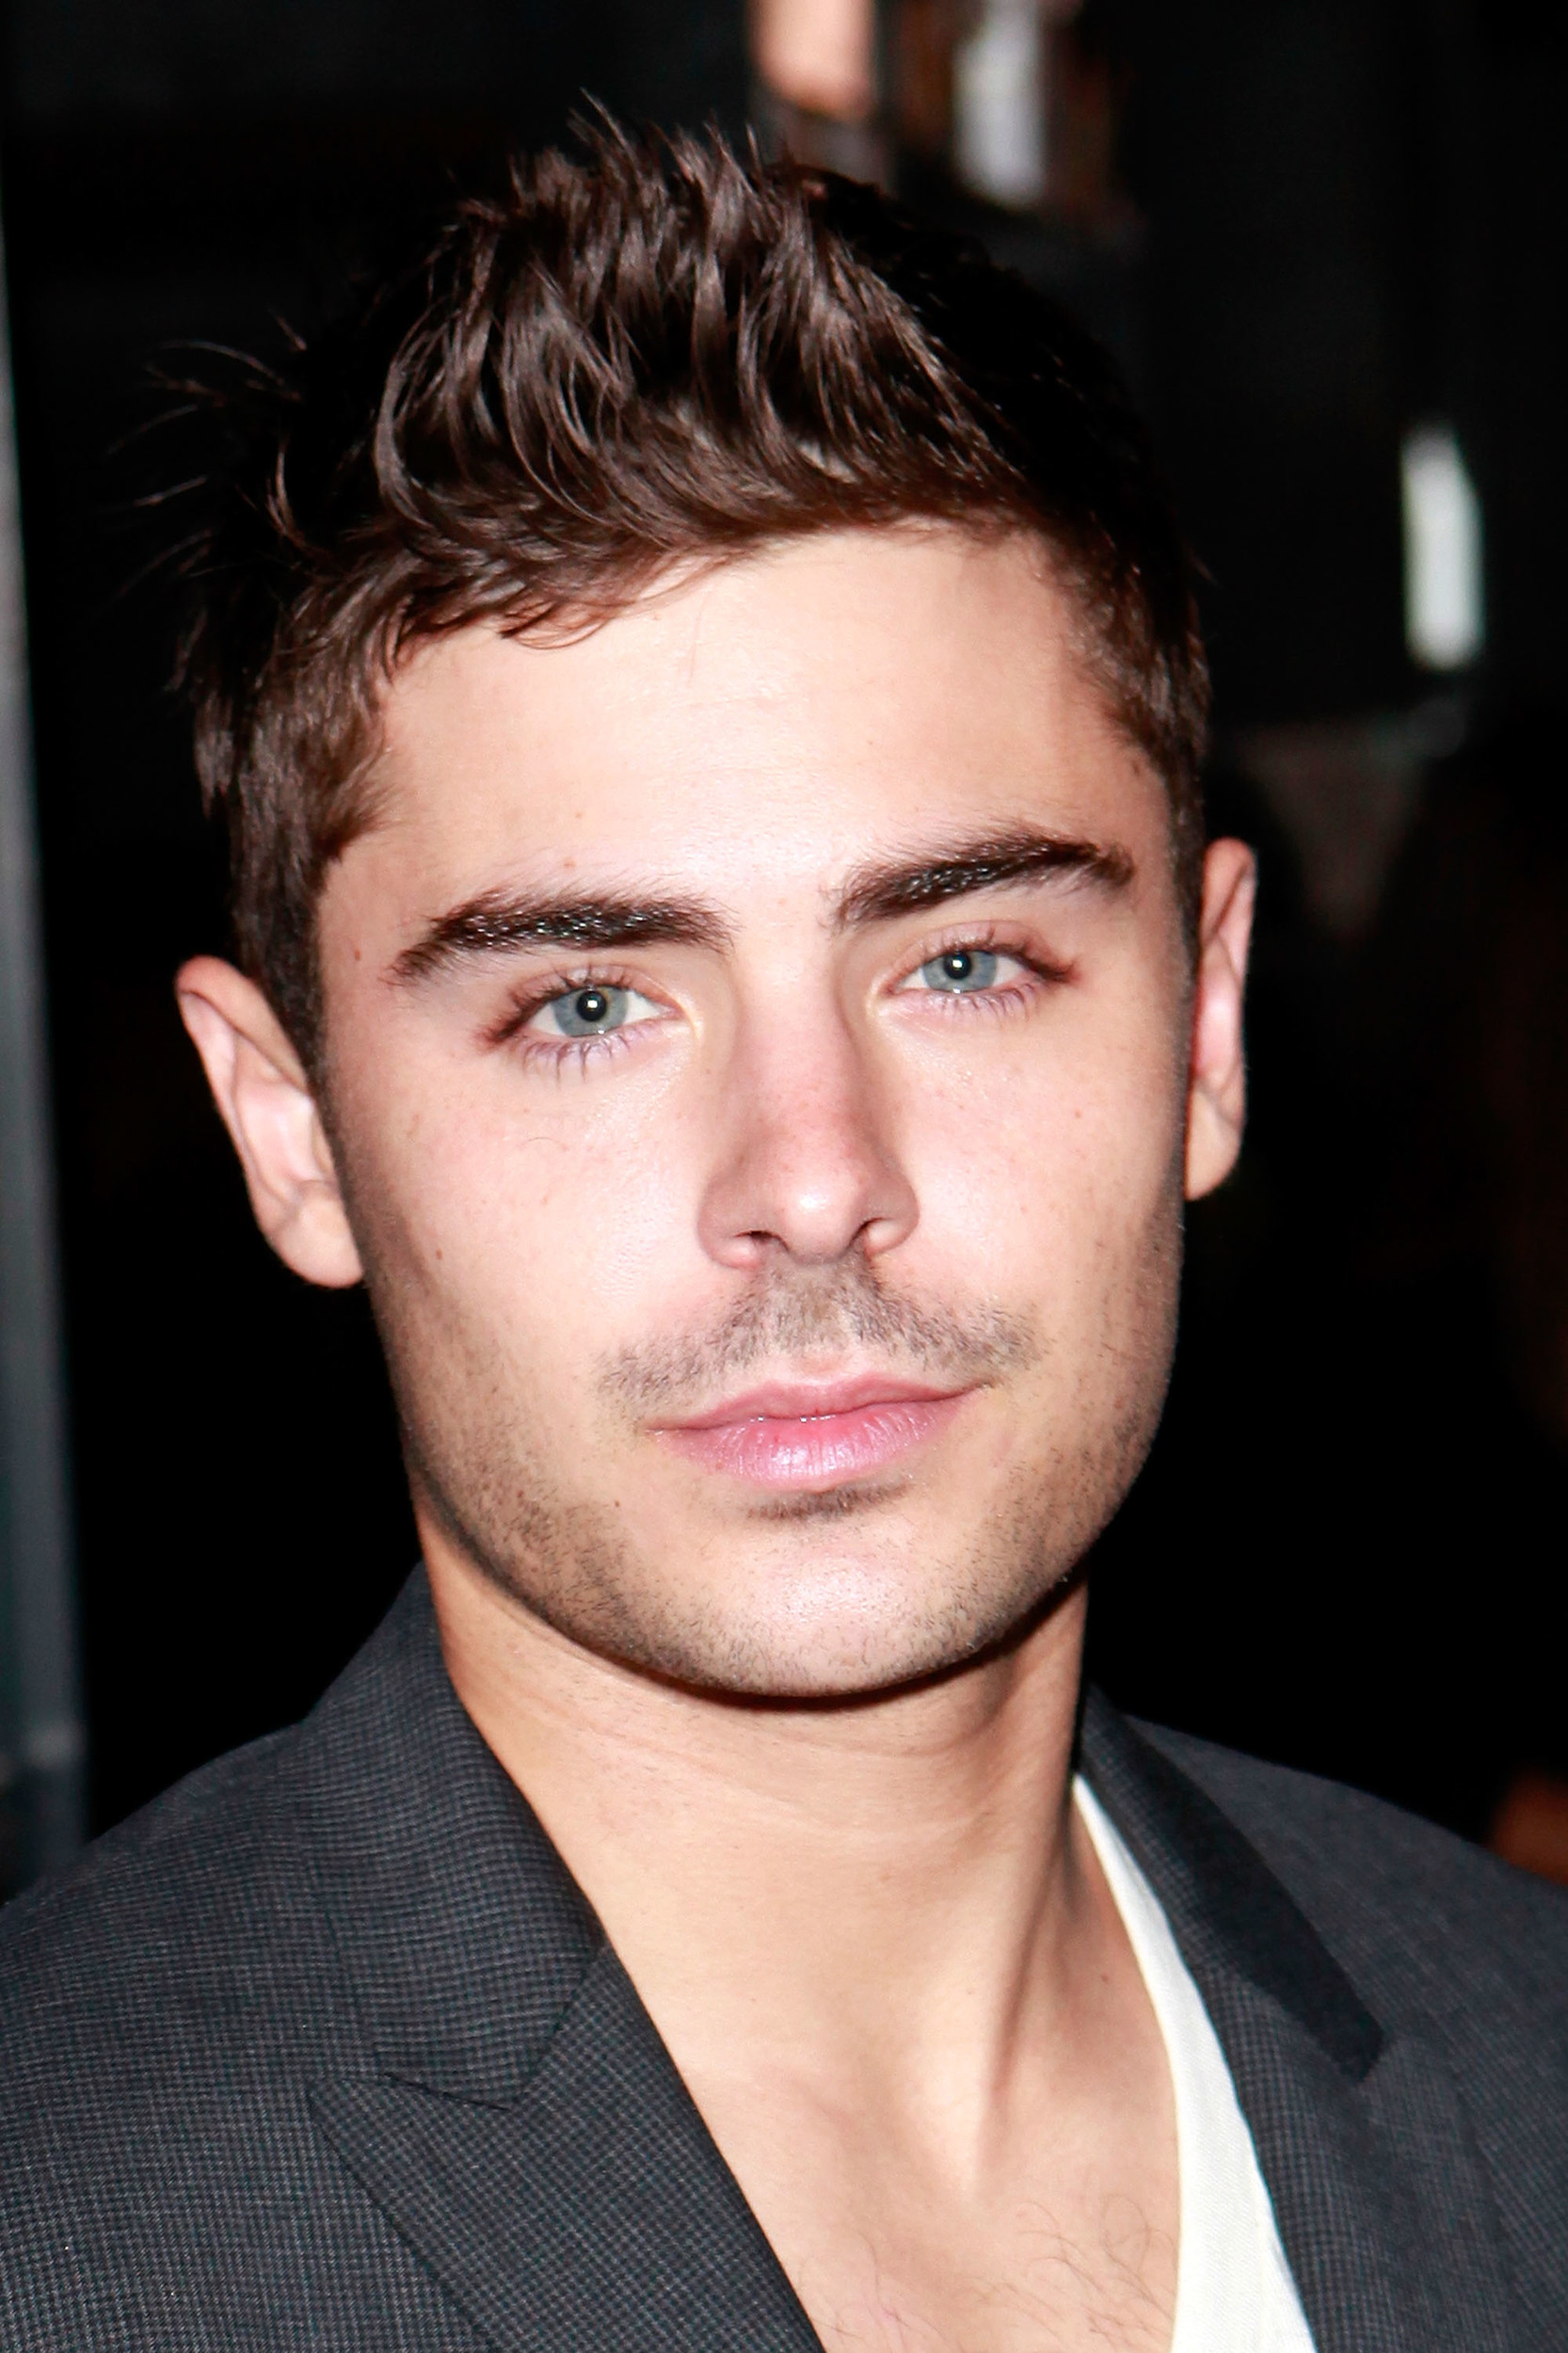 Zac efron new movie are we officially dating cast 10